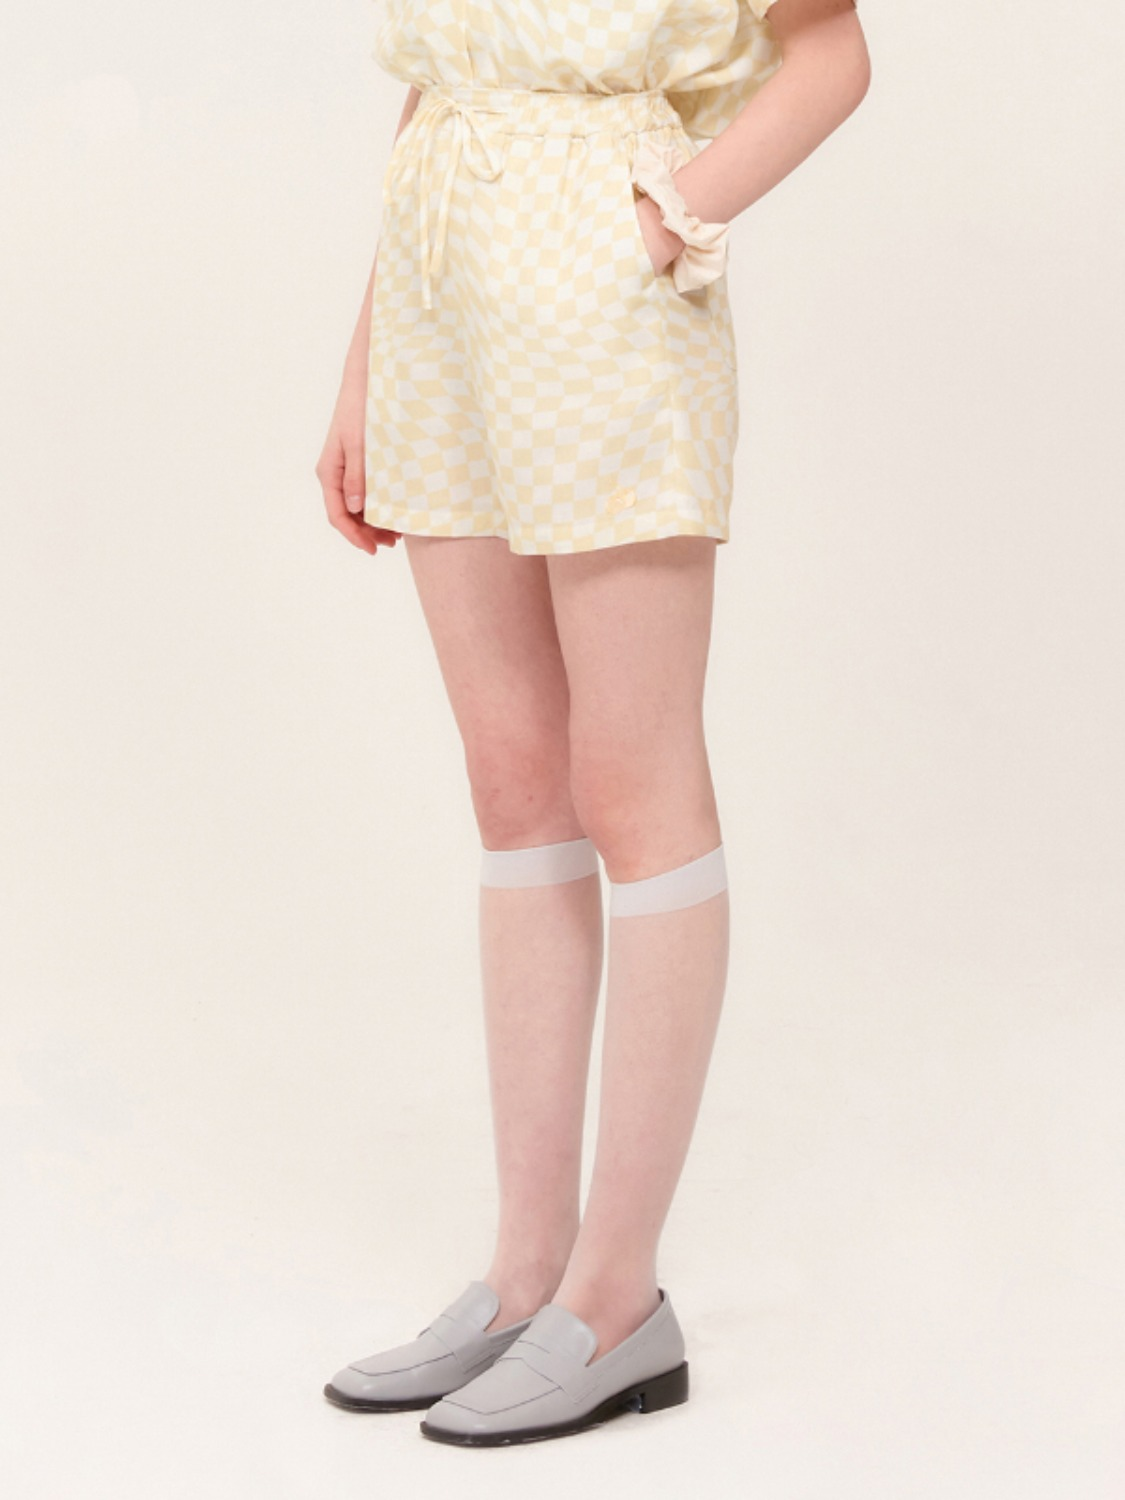 (4월 27일 예약발송)TONE ON TONE CHERRY CHECK PATTERN PANTS KH [YELLOW]